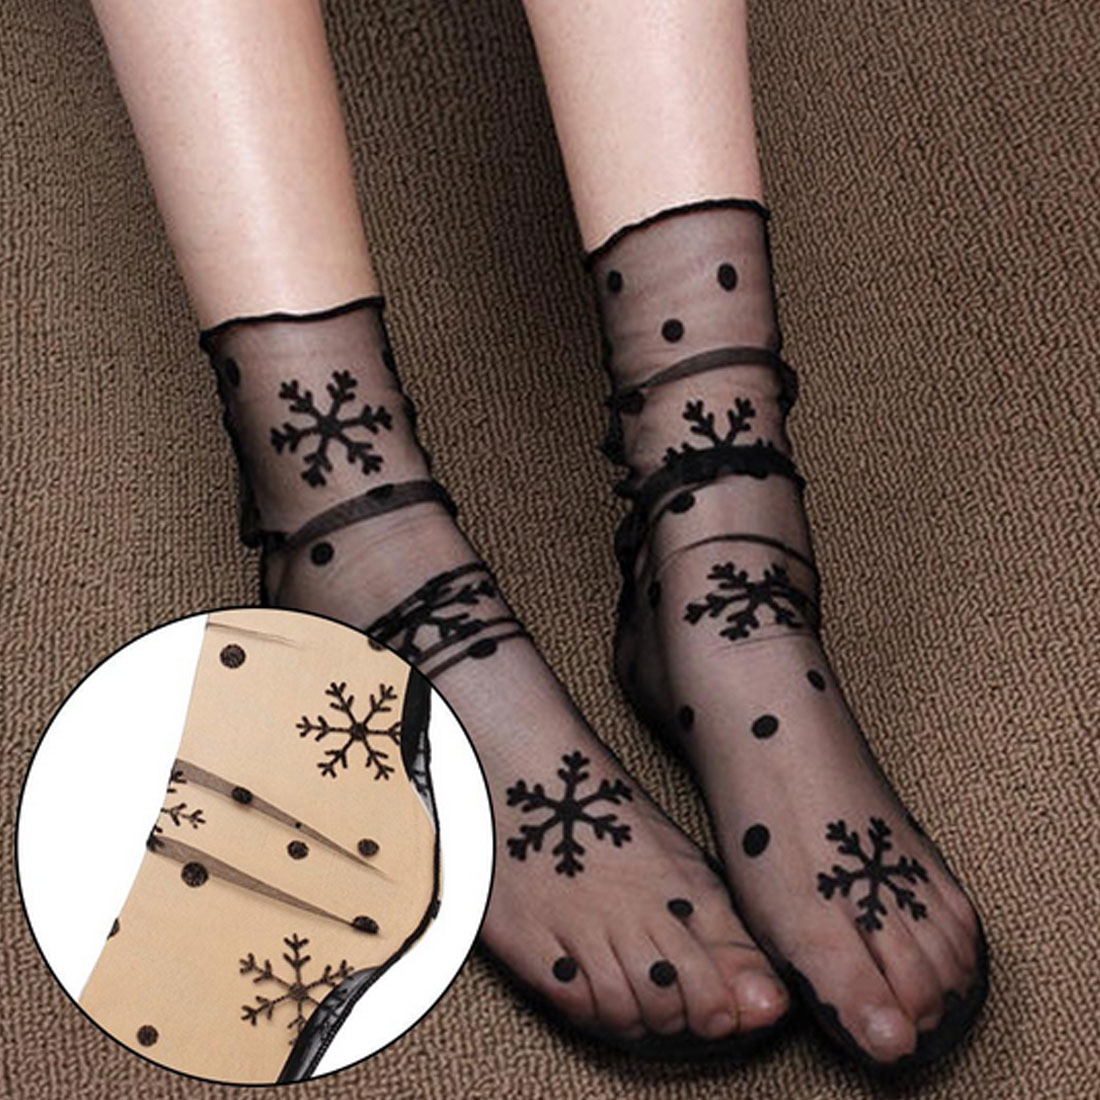 Permalink to Women's Harajuku Breathable Transparent Mesh Small Polka Dots Socks Lady Net Yarn Fishnet Dots Socks Female Hosiery Sox